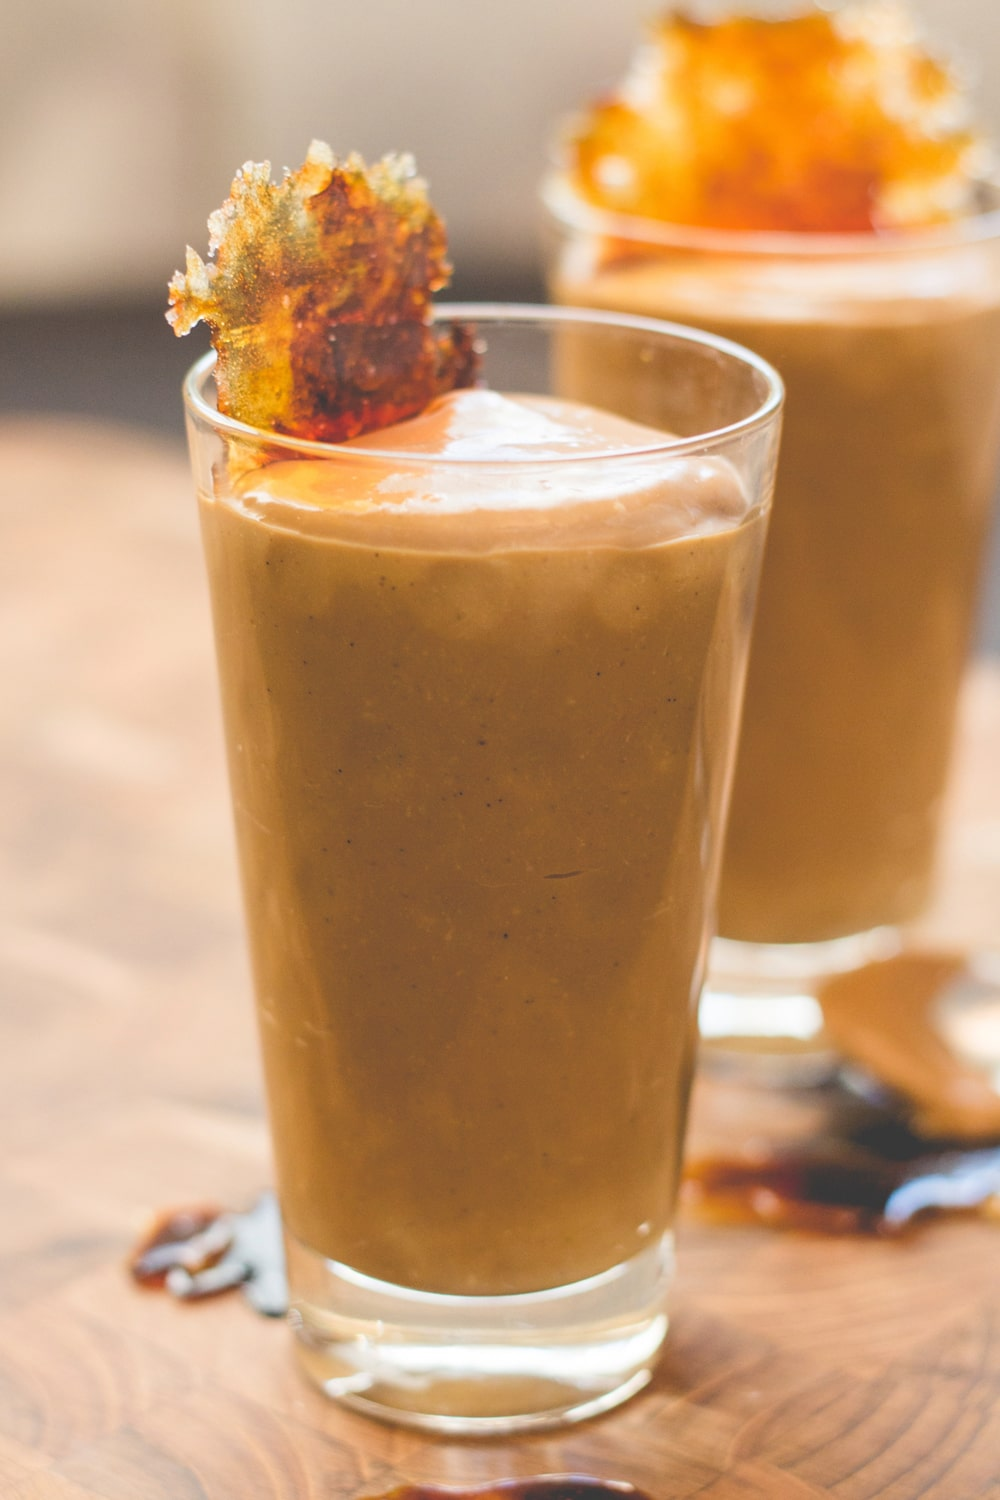 Tall glass filled with butterscotch pudding with browned piece of sugar on top all on wood cutting board surface